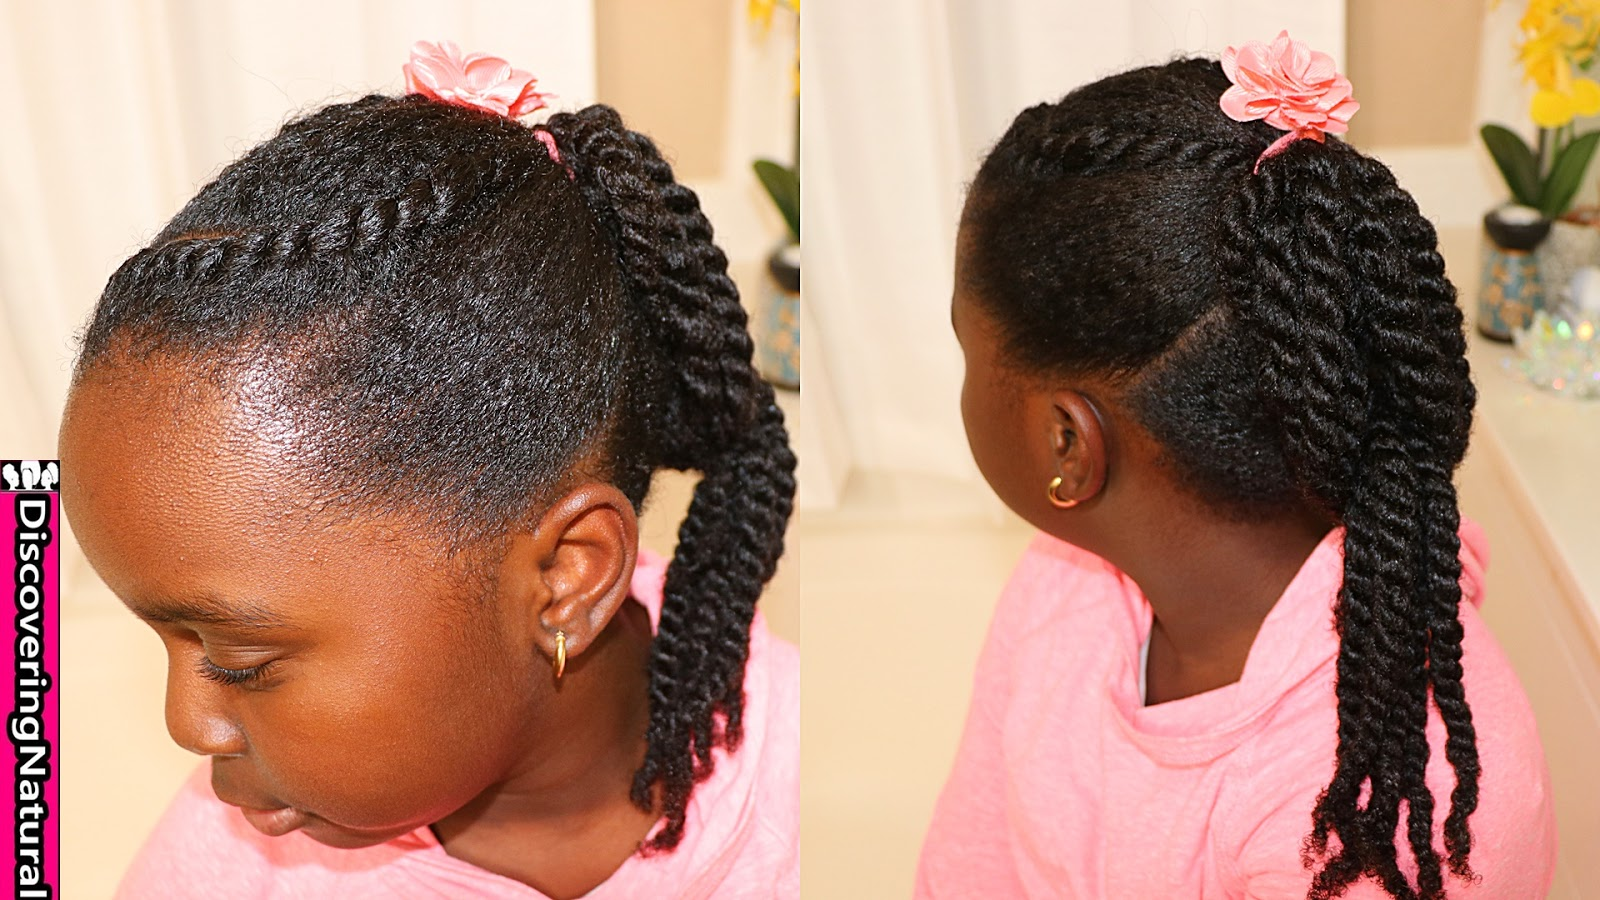 Discoveringnatural Kids Hairstyles Twists And Flat Twist